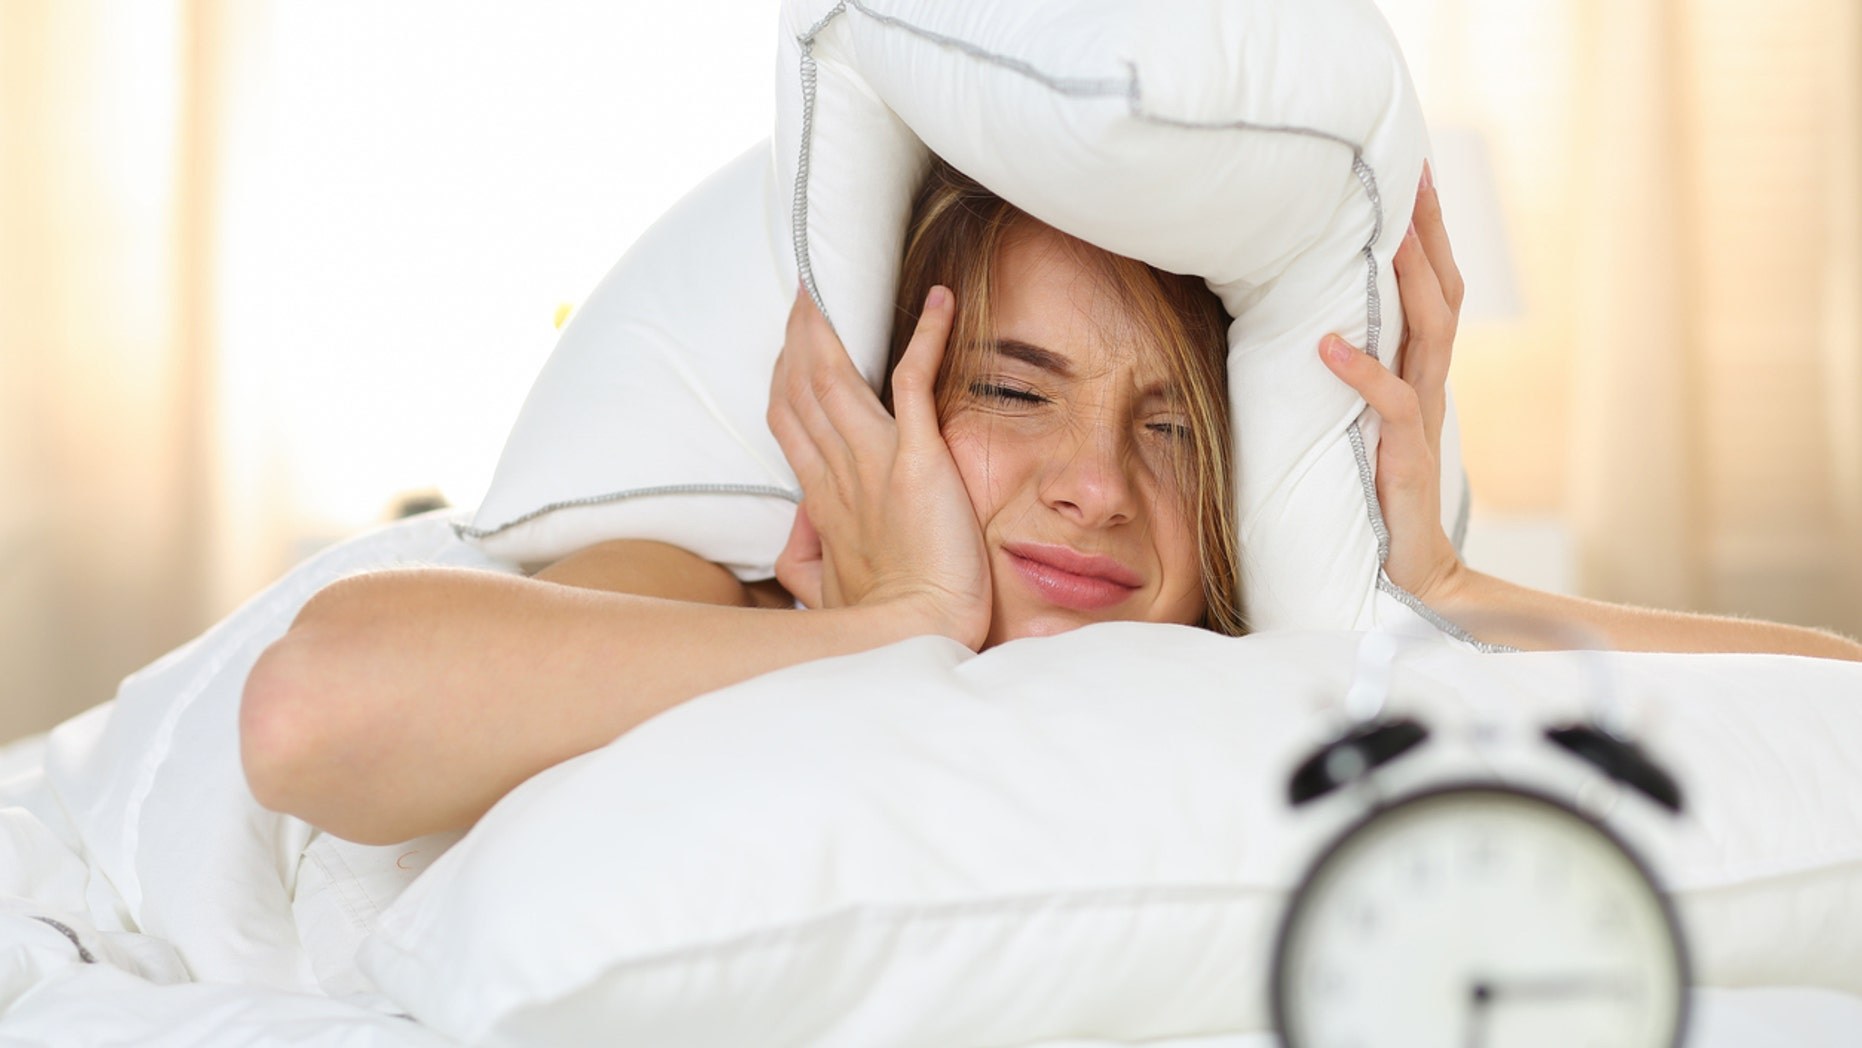 Young beautiful blonde woman lying in bed suffering from alarm clock sound covering head and ears with pillow making unpleasant face. Early wake up, not getting enough sleep, going work concept